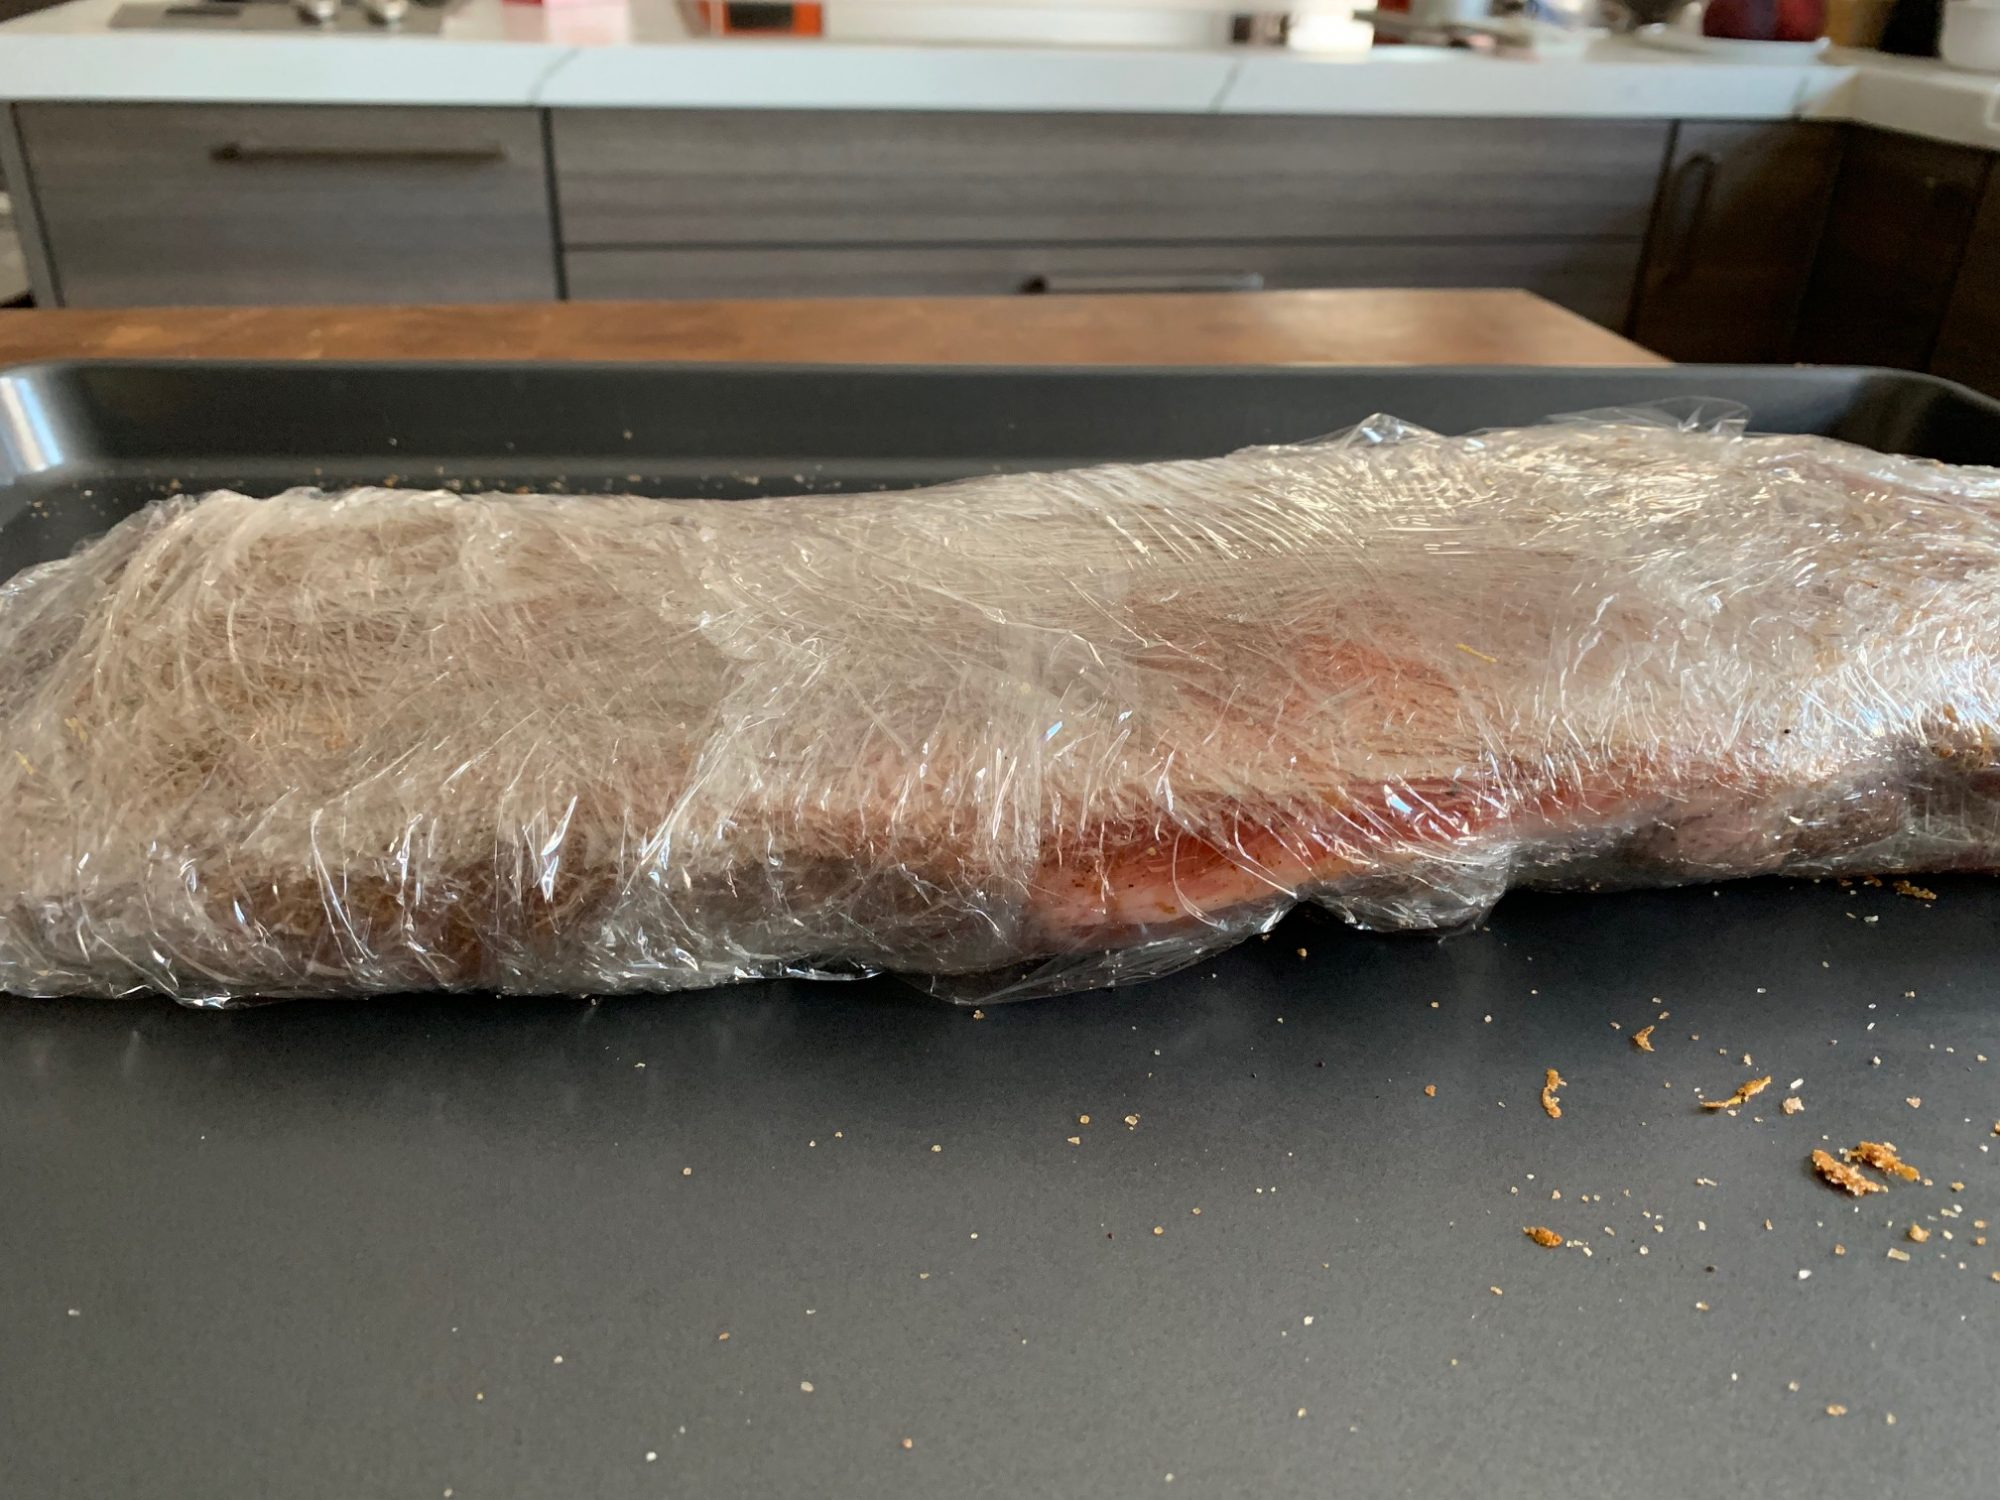 Ribs wrapped in plastic